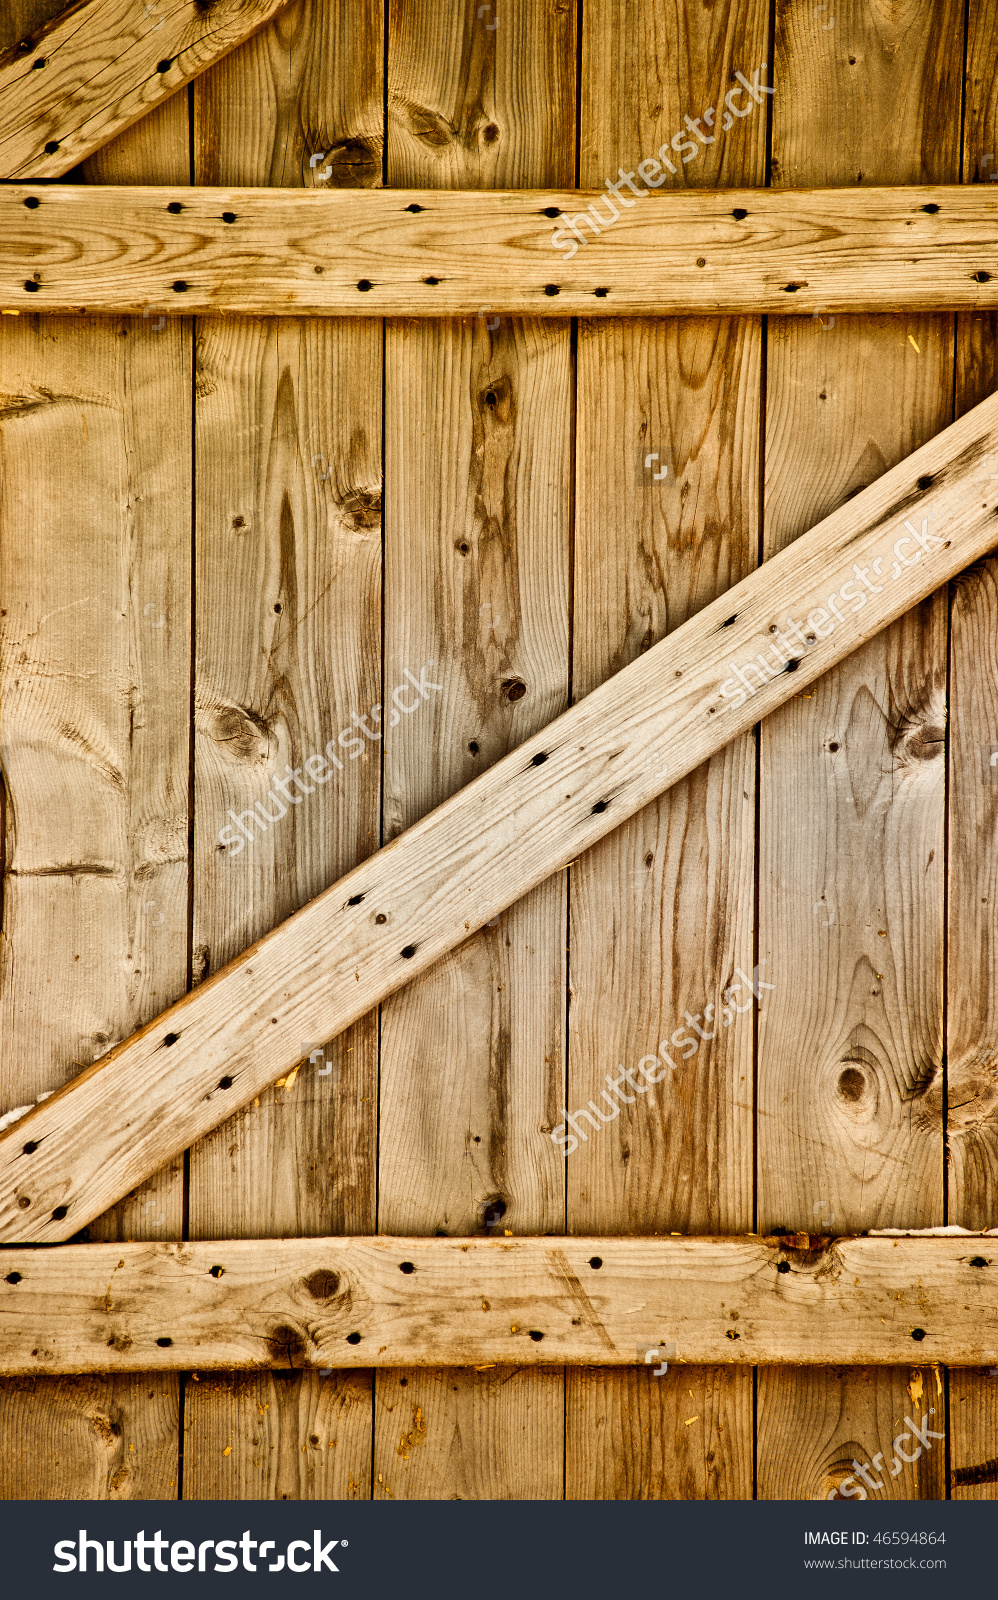 Rustic Wooden Barn Door Stock Photo 46594864.